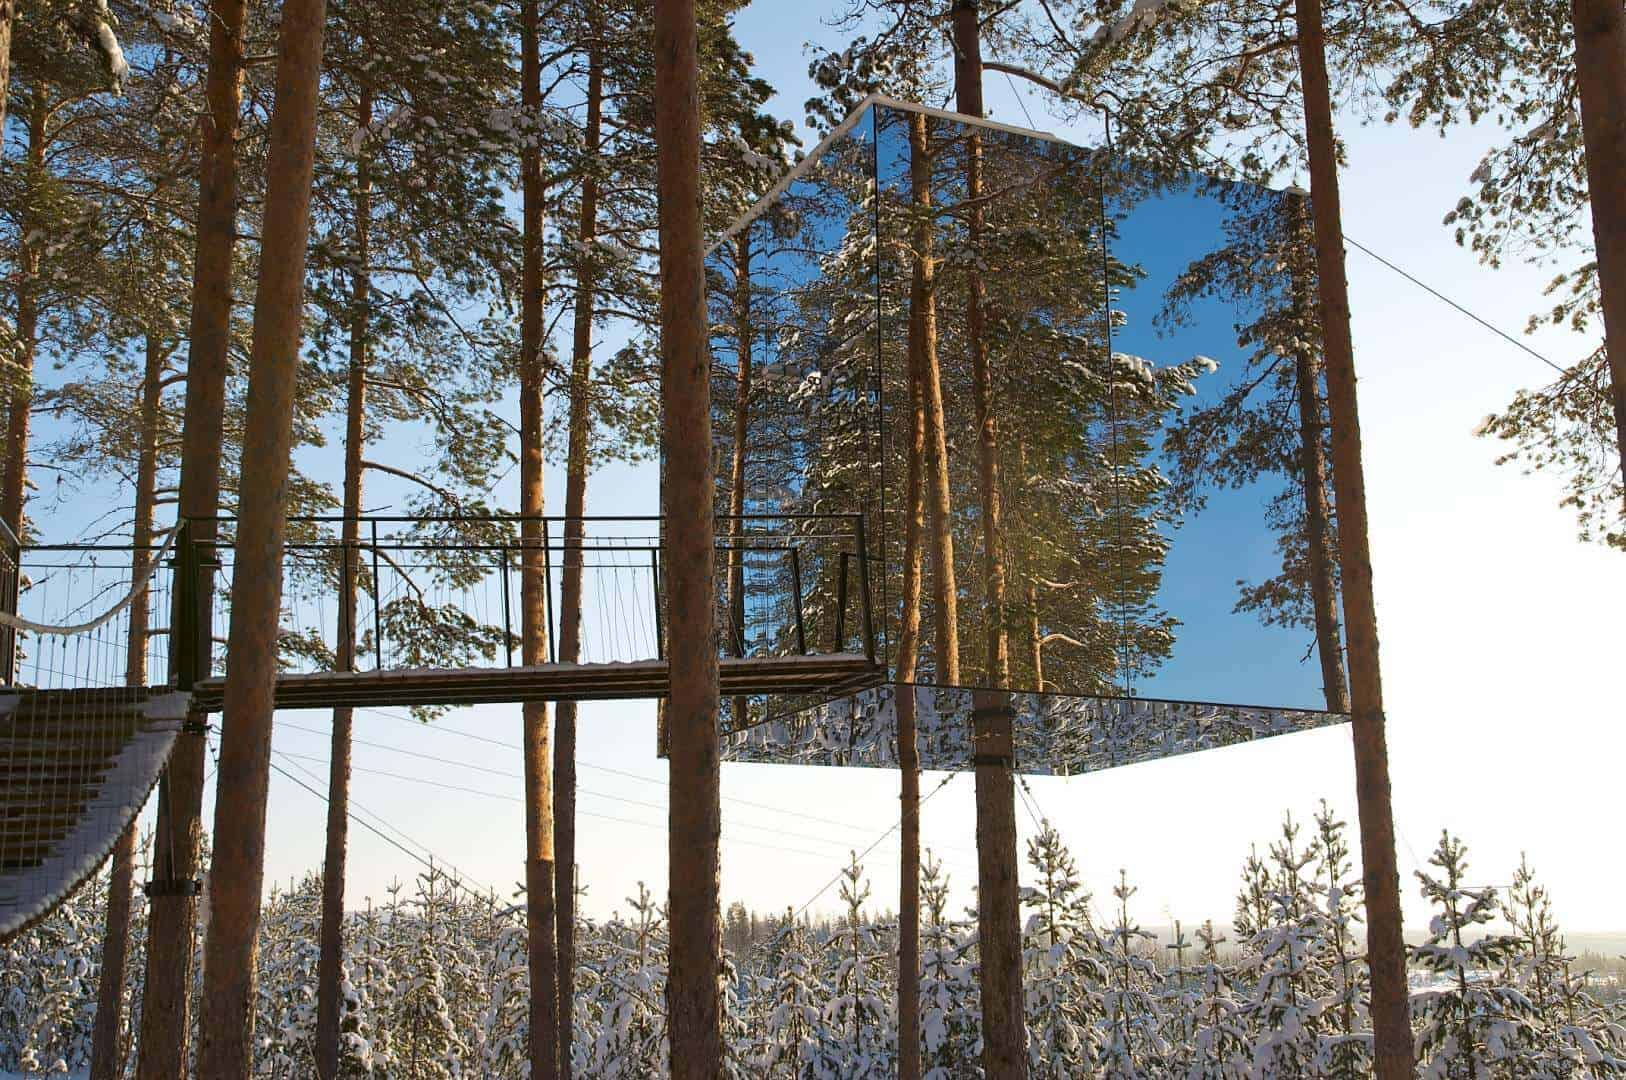 treehotel mirrorcube big